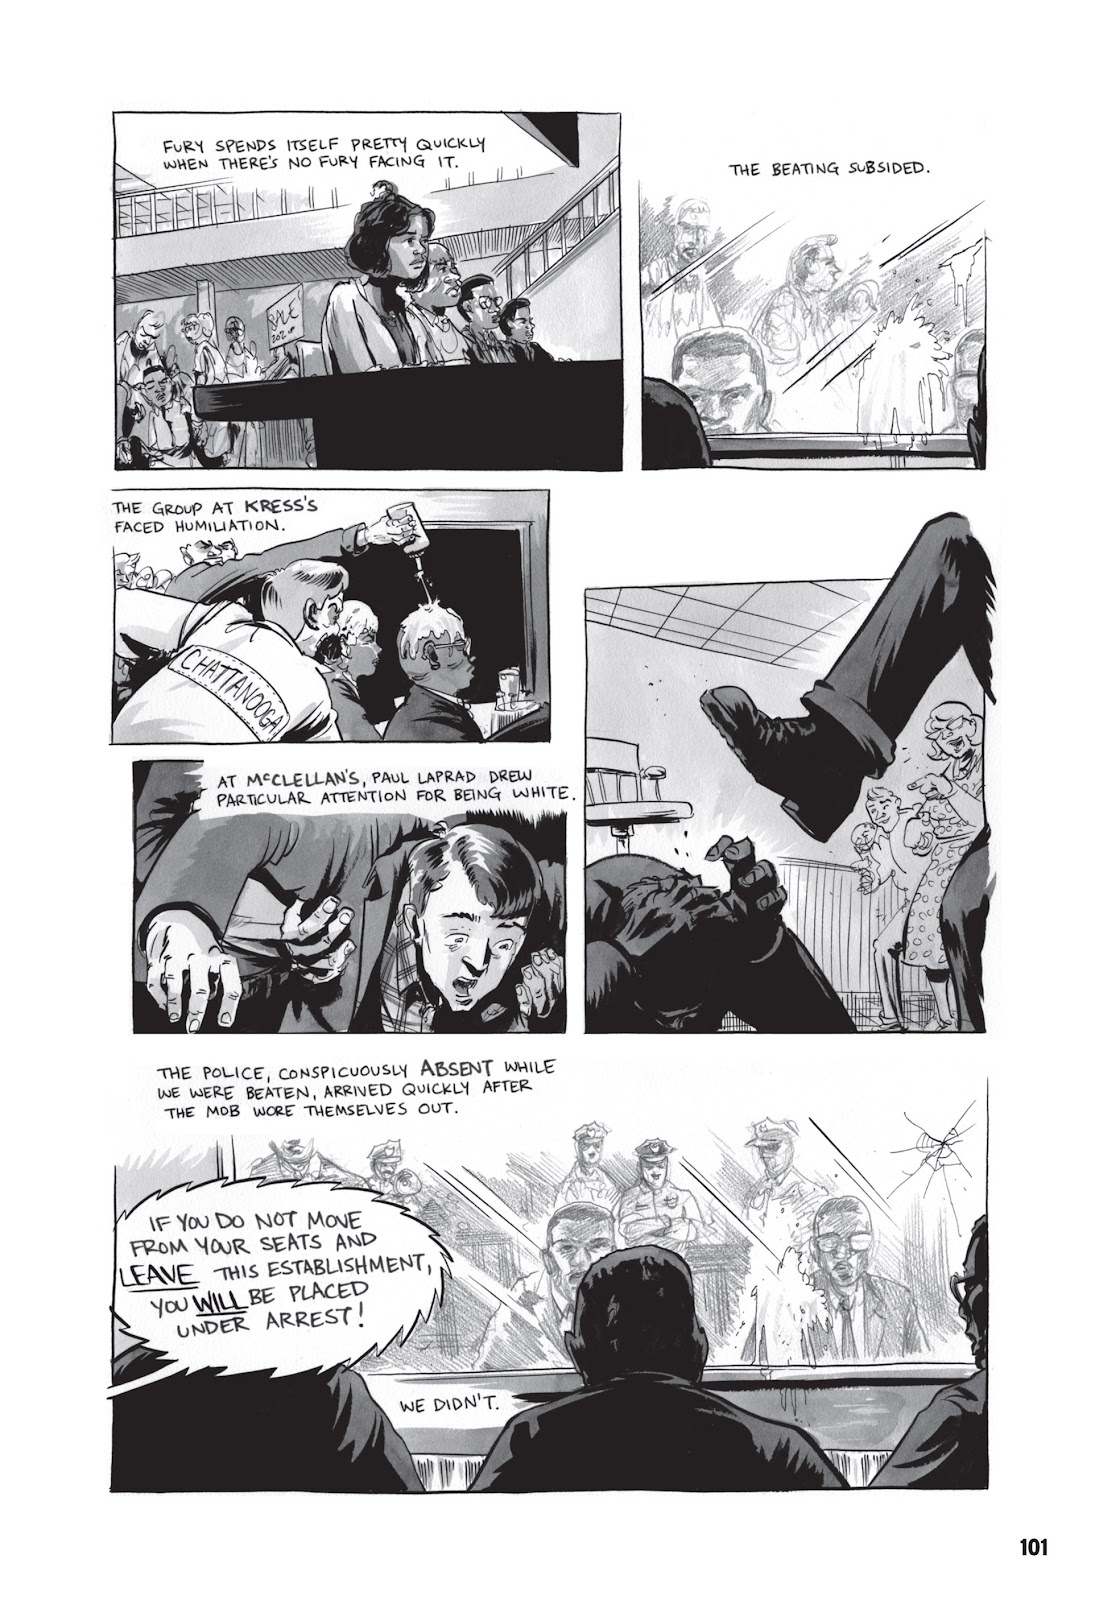 March 1 Page 98